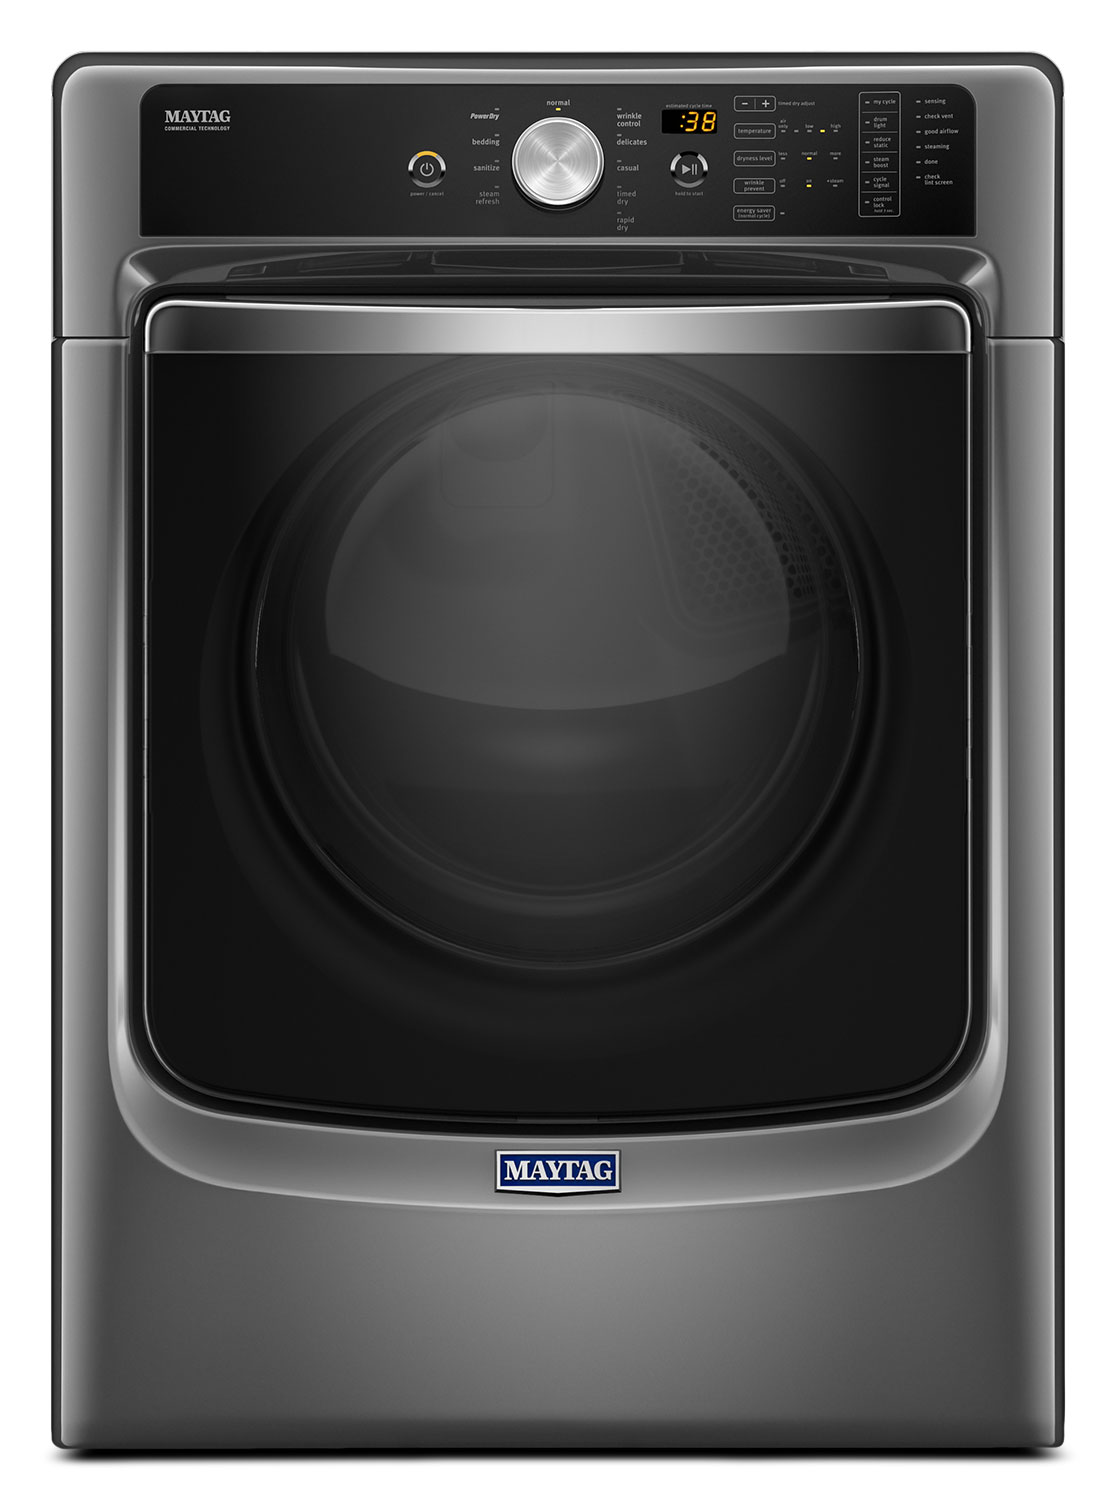 Washers and Dryers - Maytag Metallic Slate Gas Dryer w/ PowerDry System (7.4 Cu. Ft.) - MGD8200FC